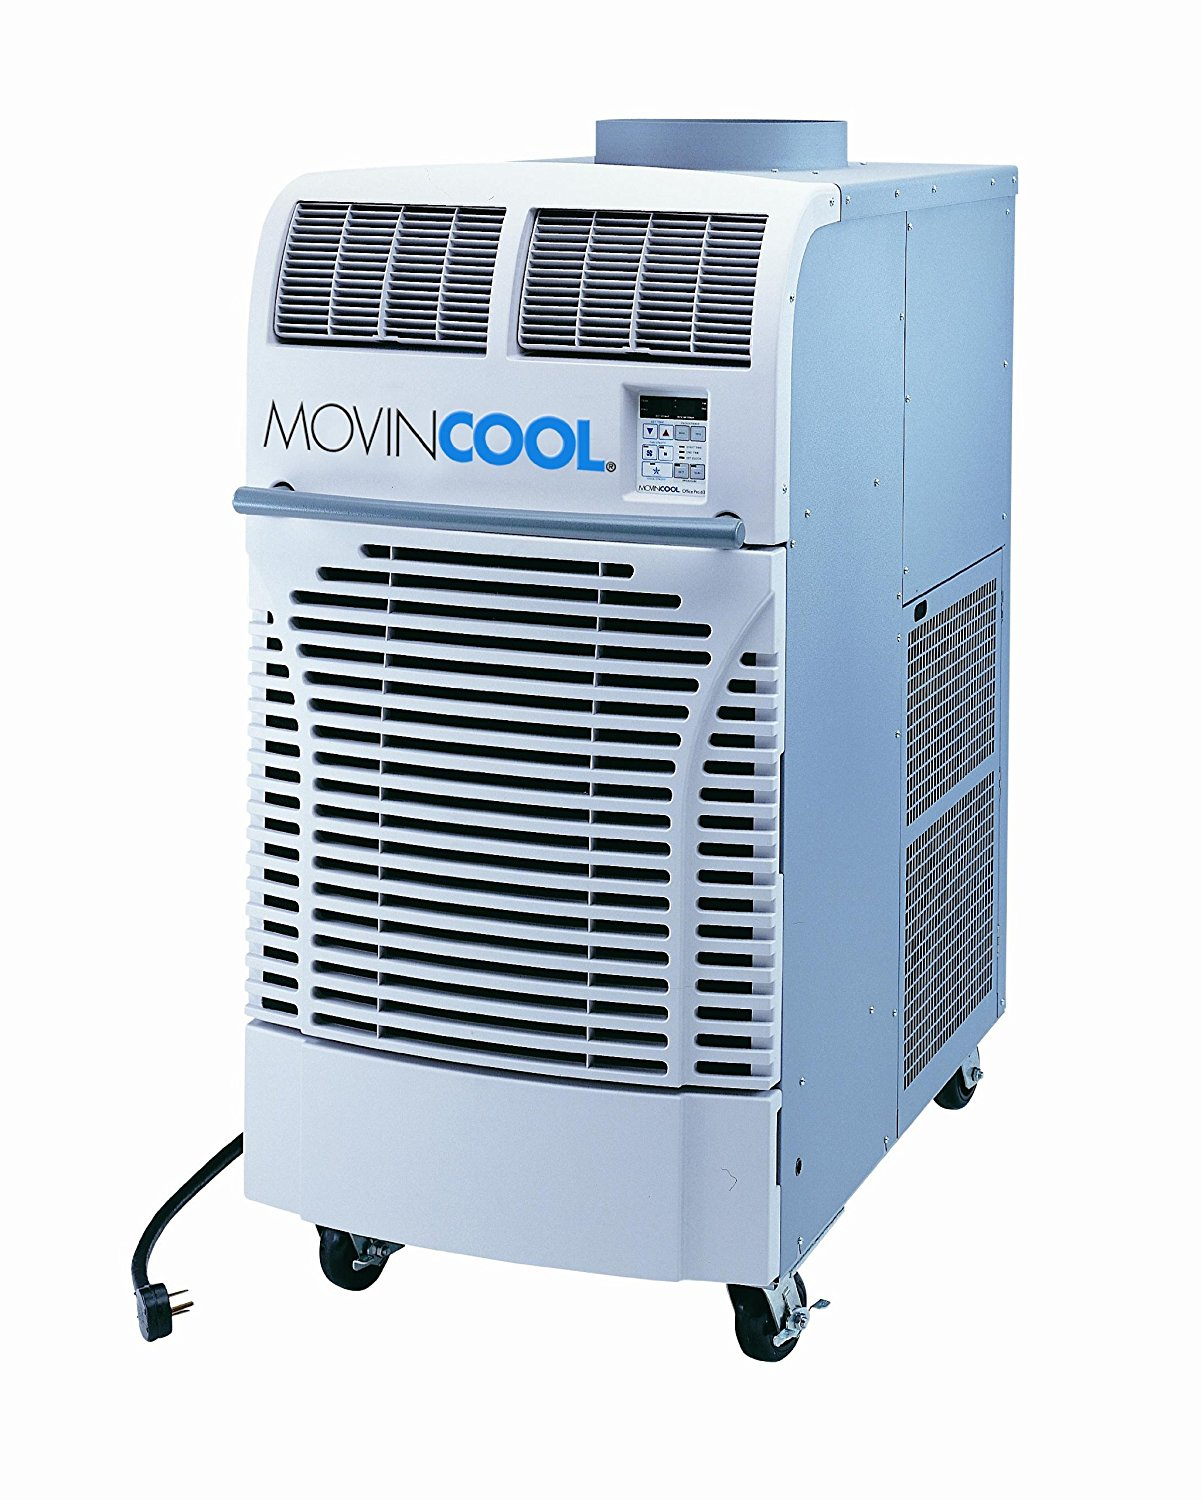 Five conveniences of a portable air conditioner